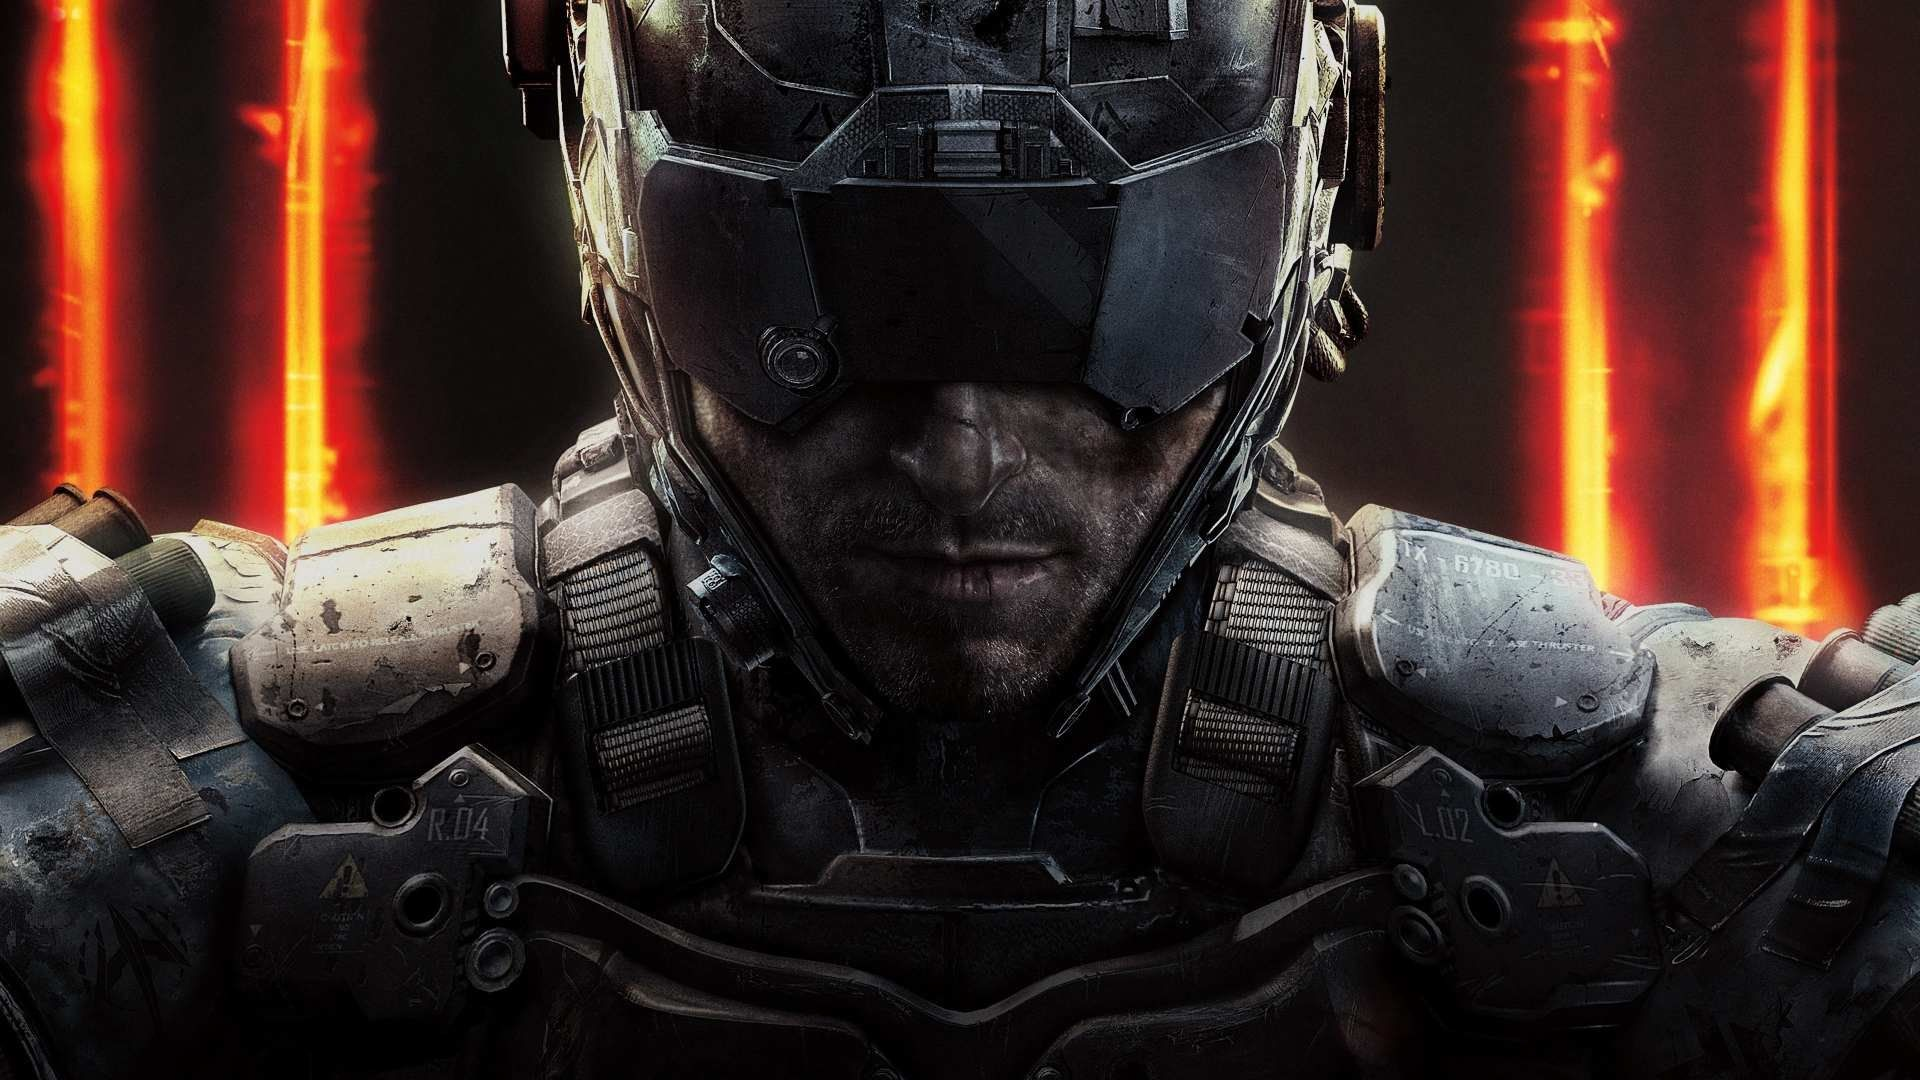 Call Of Duty Free Wallpapers Themed Call Of Duty Black Black Ops 3 Call Of Duty